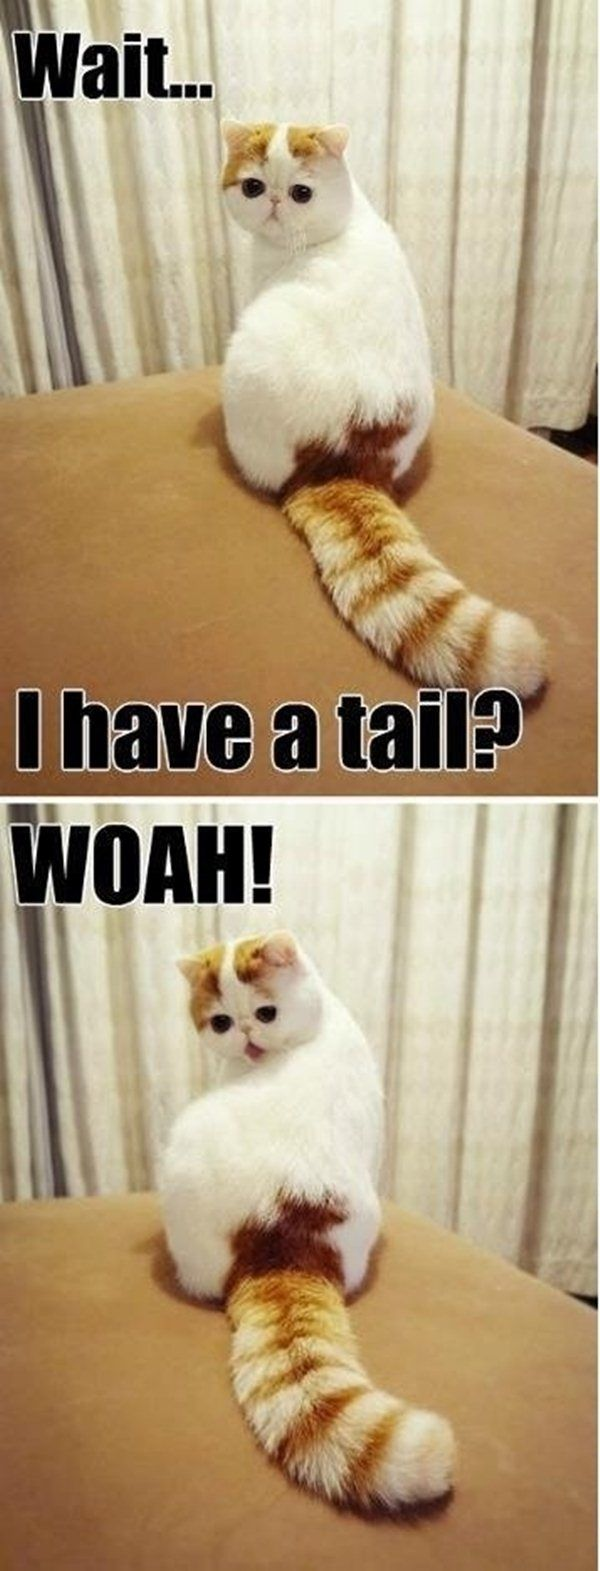 Wait - Cat humor